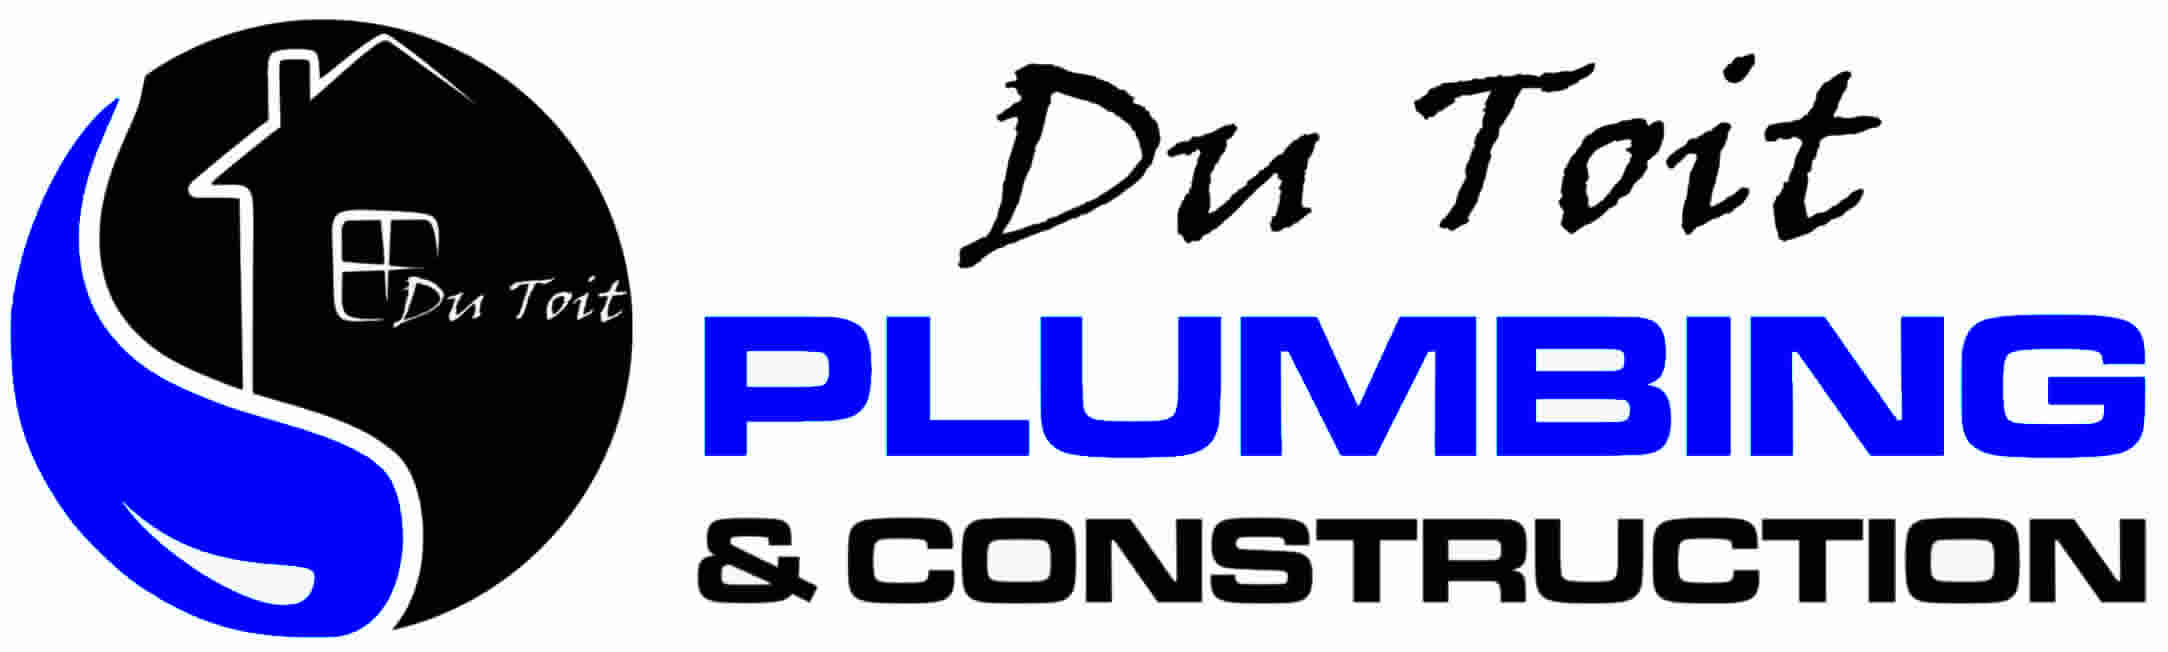 Du Toit Plumbing & Construction Website